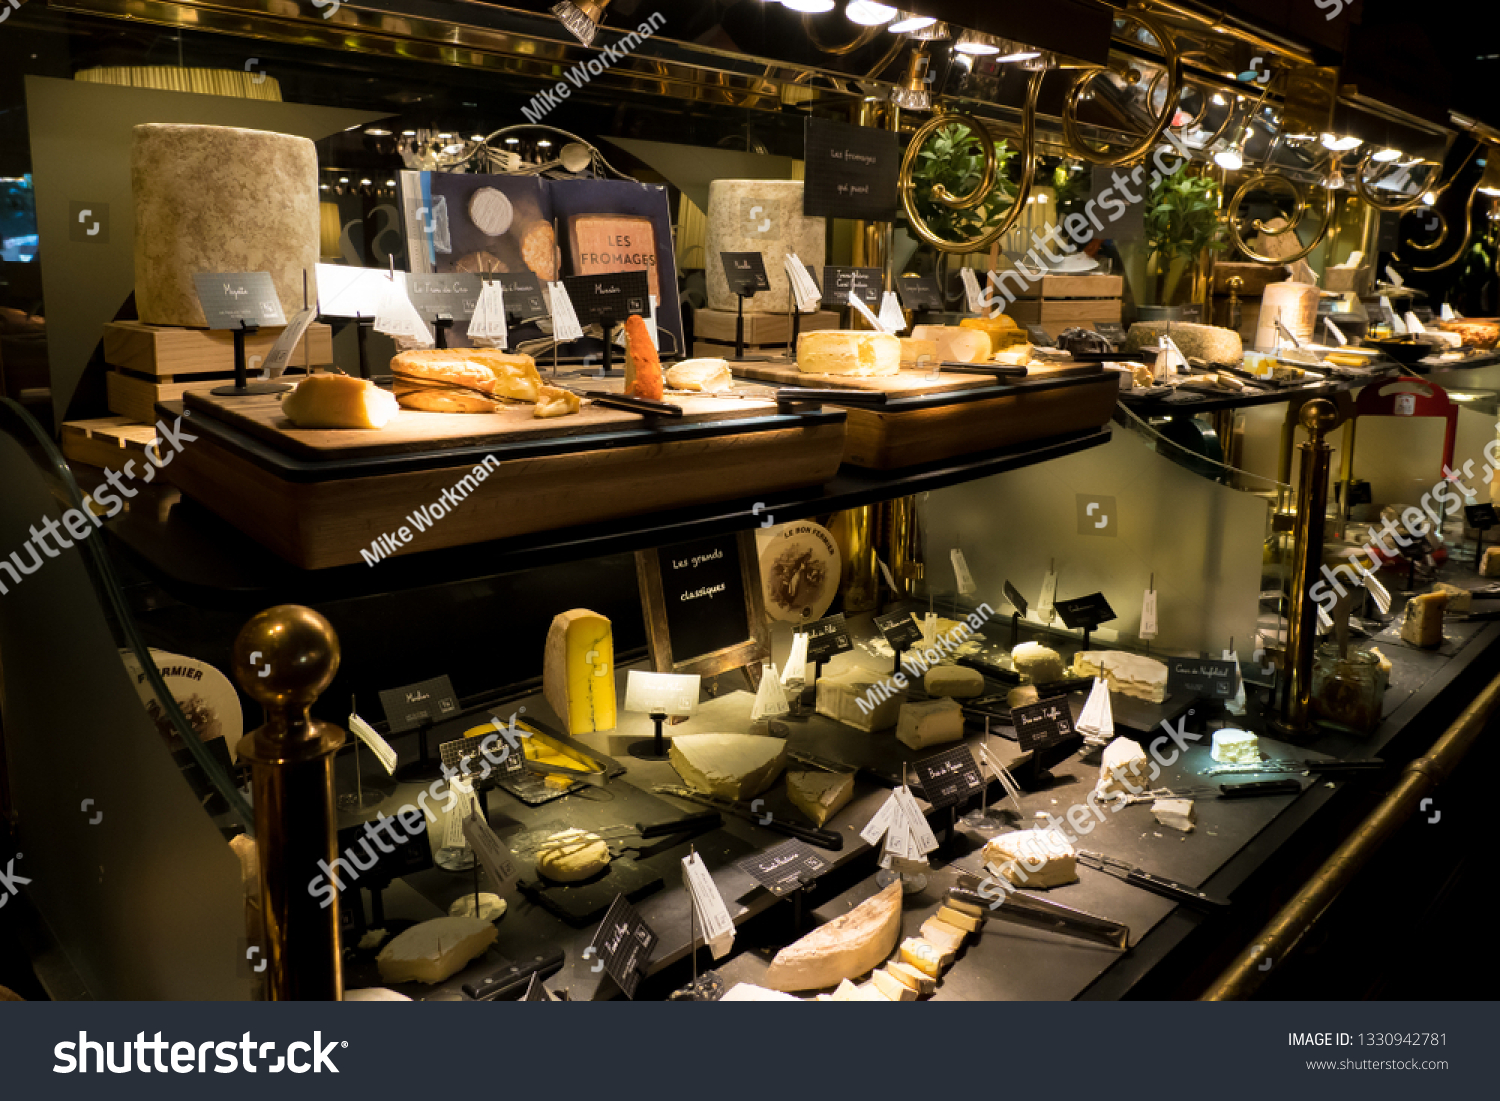 Narbonne France Worlds Largest Cheese Selection Stock Photo Edit Now 1330942781